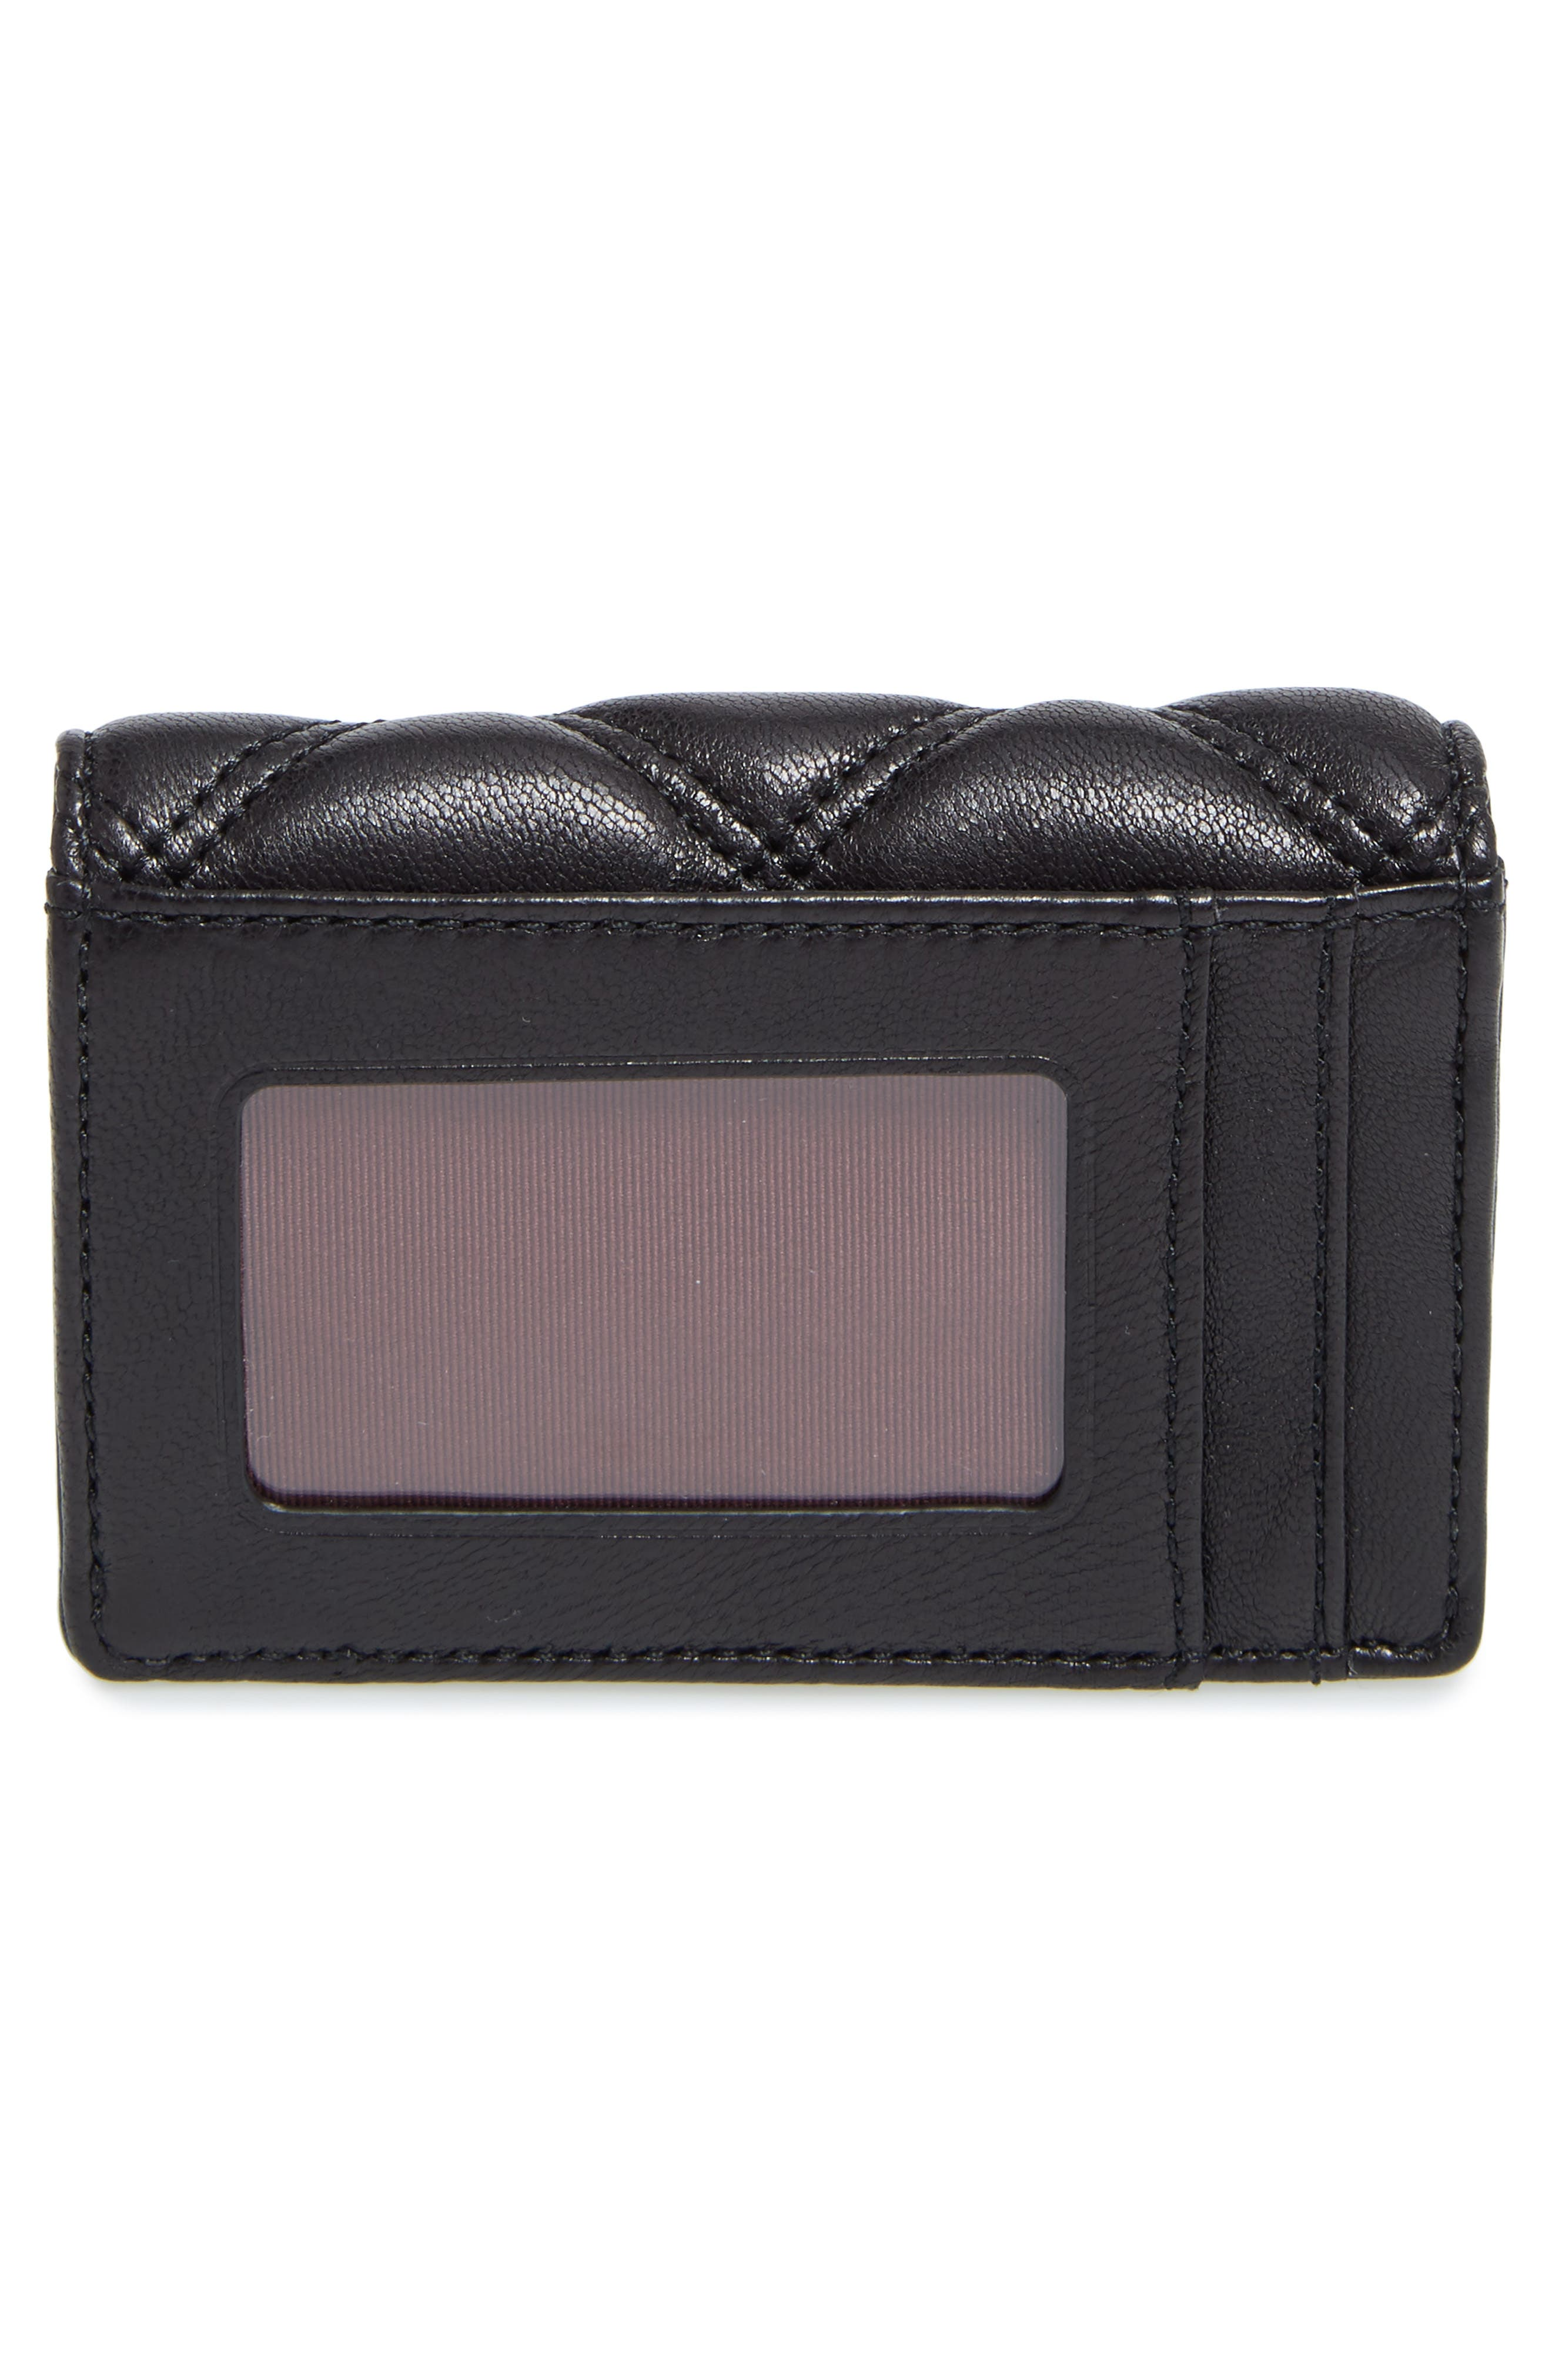 Quilted French Wallet,                             Alternate thumbnail 4, color,                             001